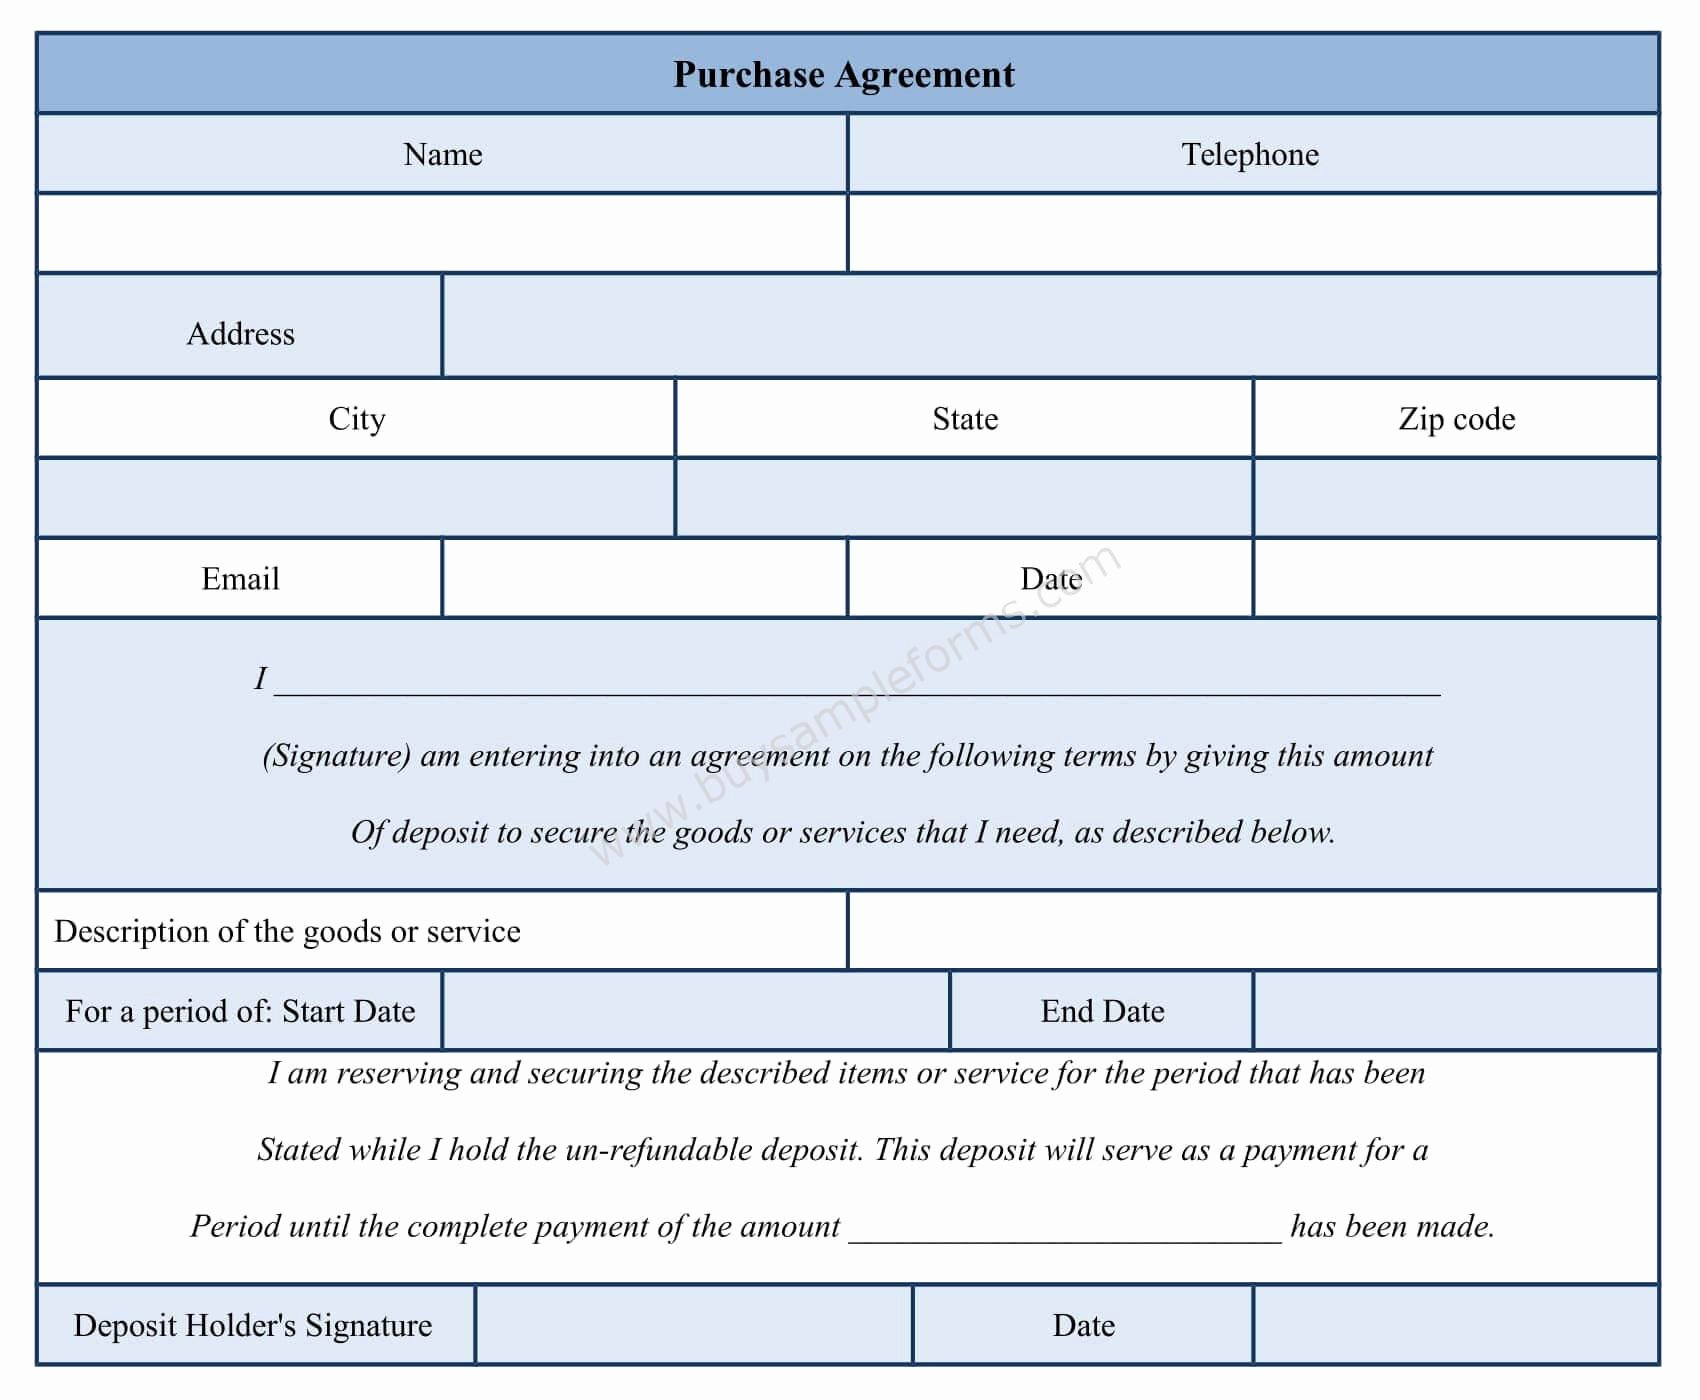 Purchase Agreement Template Word Unique Purchase Agreement form Template Sample forms